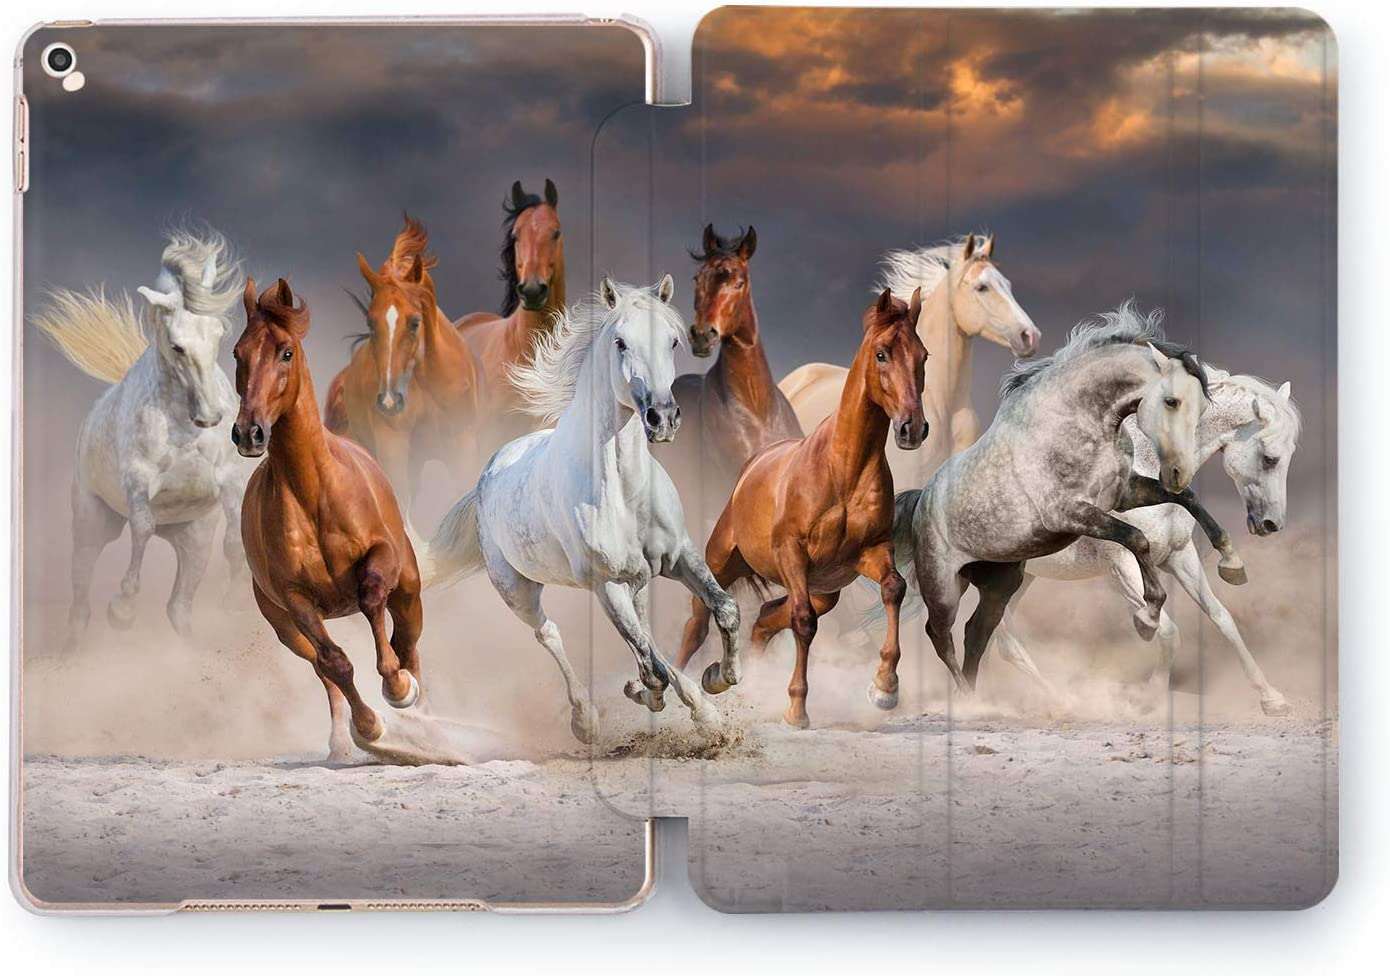 Wonder Wild Running Horses Apple iPad Pro Case 9.7 11 inch Mini 1 2 3 4 Air 2 10.5 12.9 11 10.2 Design 5th 6th Gen Clear Smart Hard Cover Nature Animals Sunset Realism Gallop Clouds Tribe World